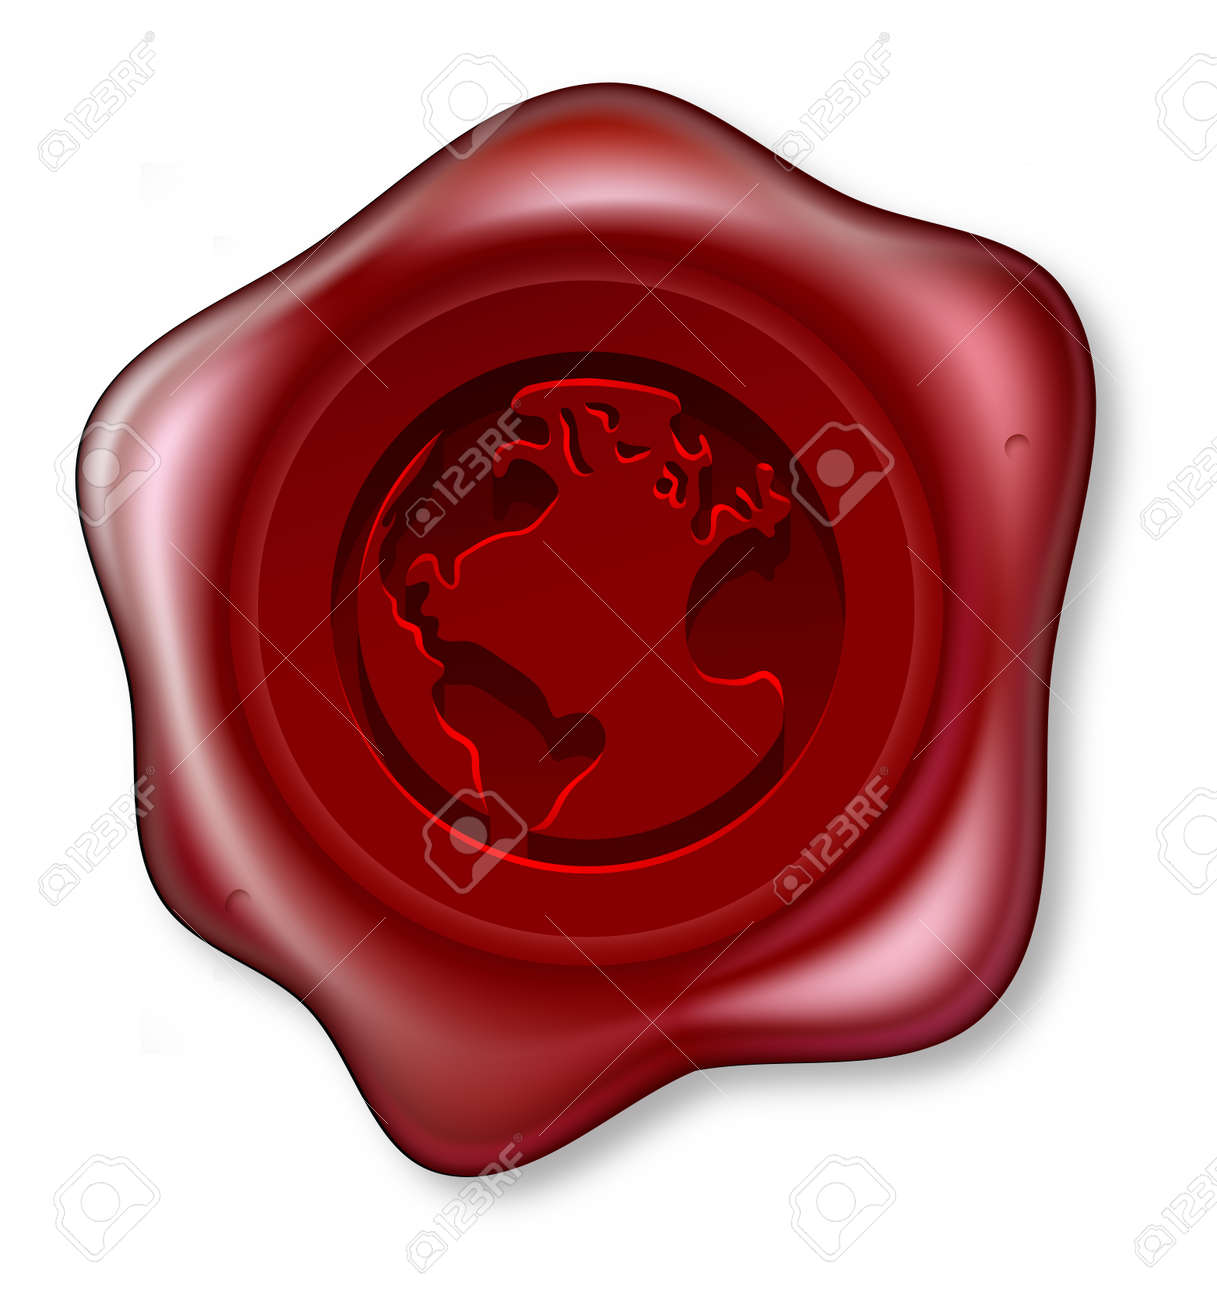 A red sealing wax seal with a world globe motif embossed on it Stock Vector - 15423925